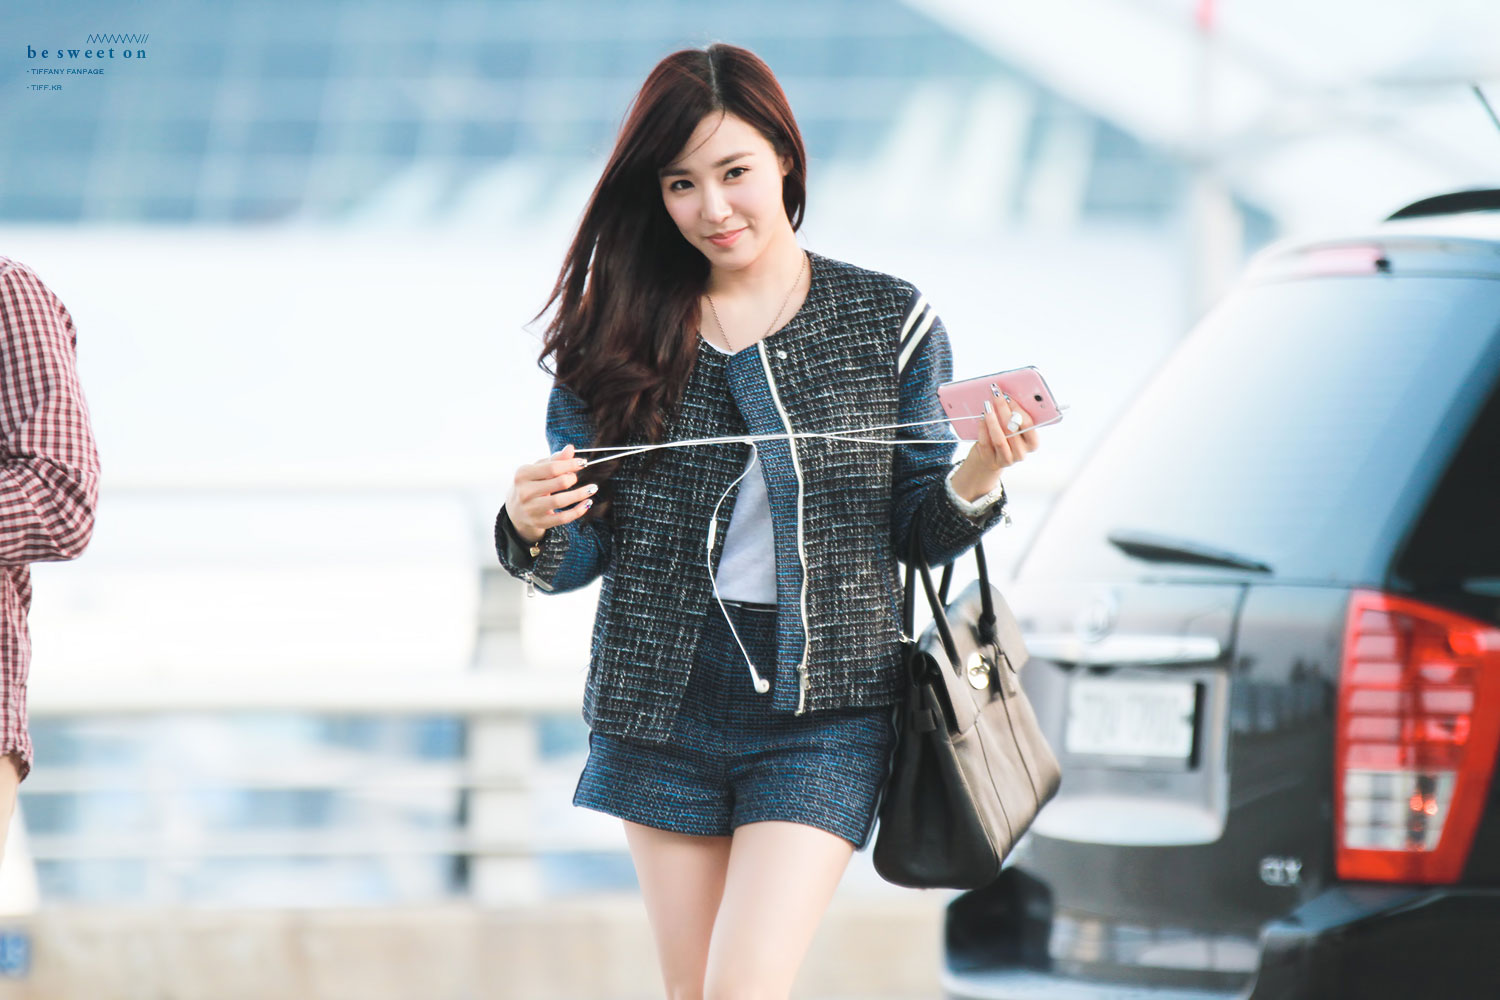 Tiffany Incheon Airport to Los Angeles